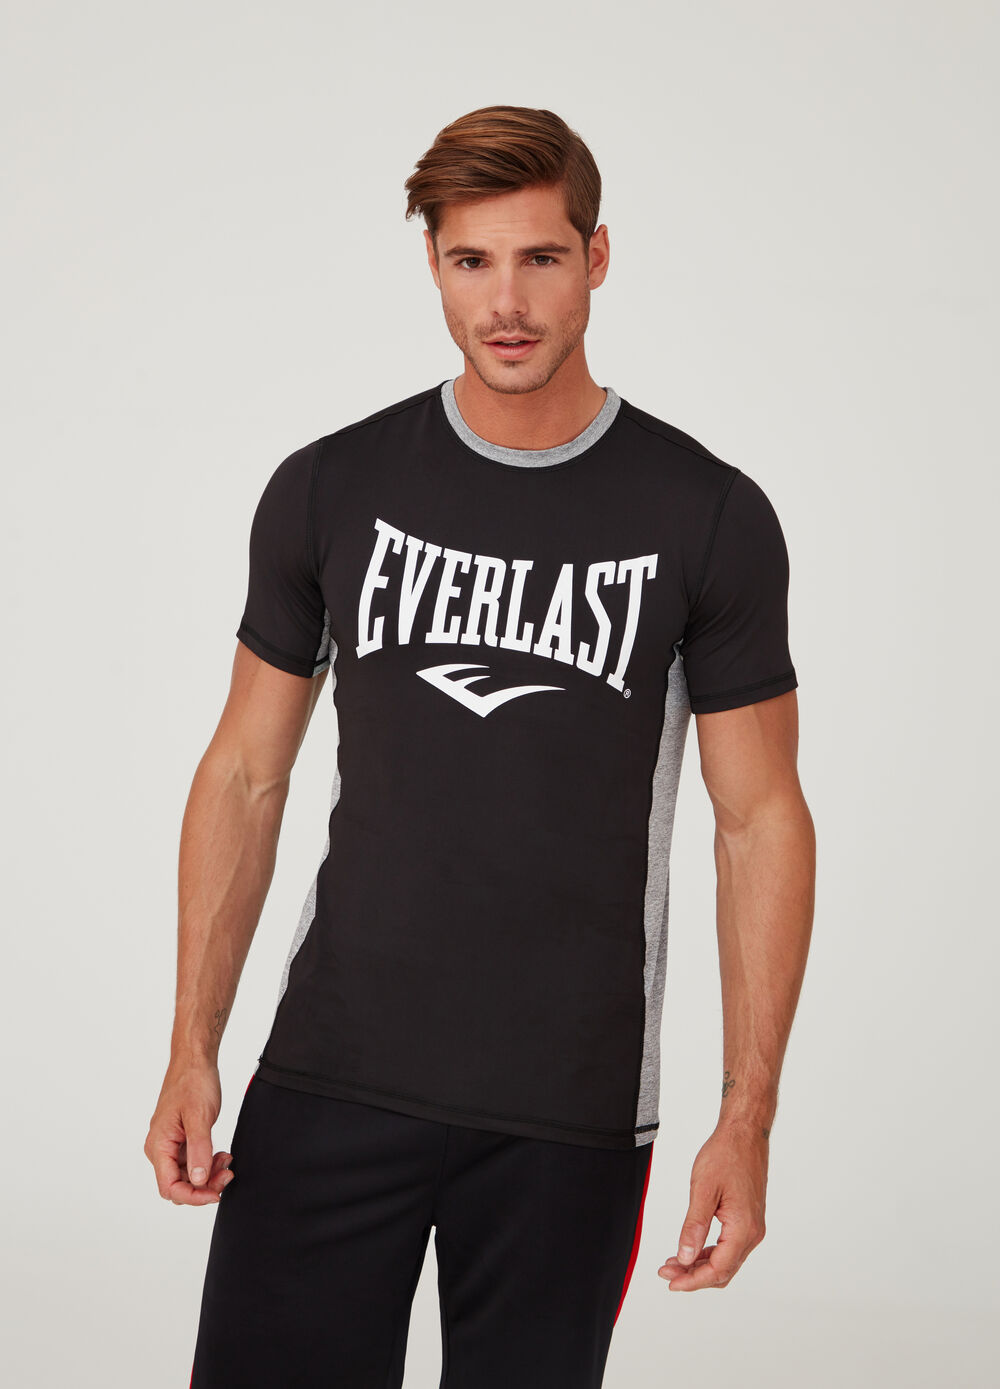 Everlast stretch T-shirt with bands